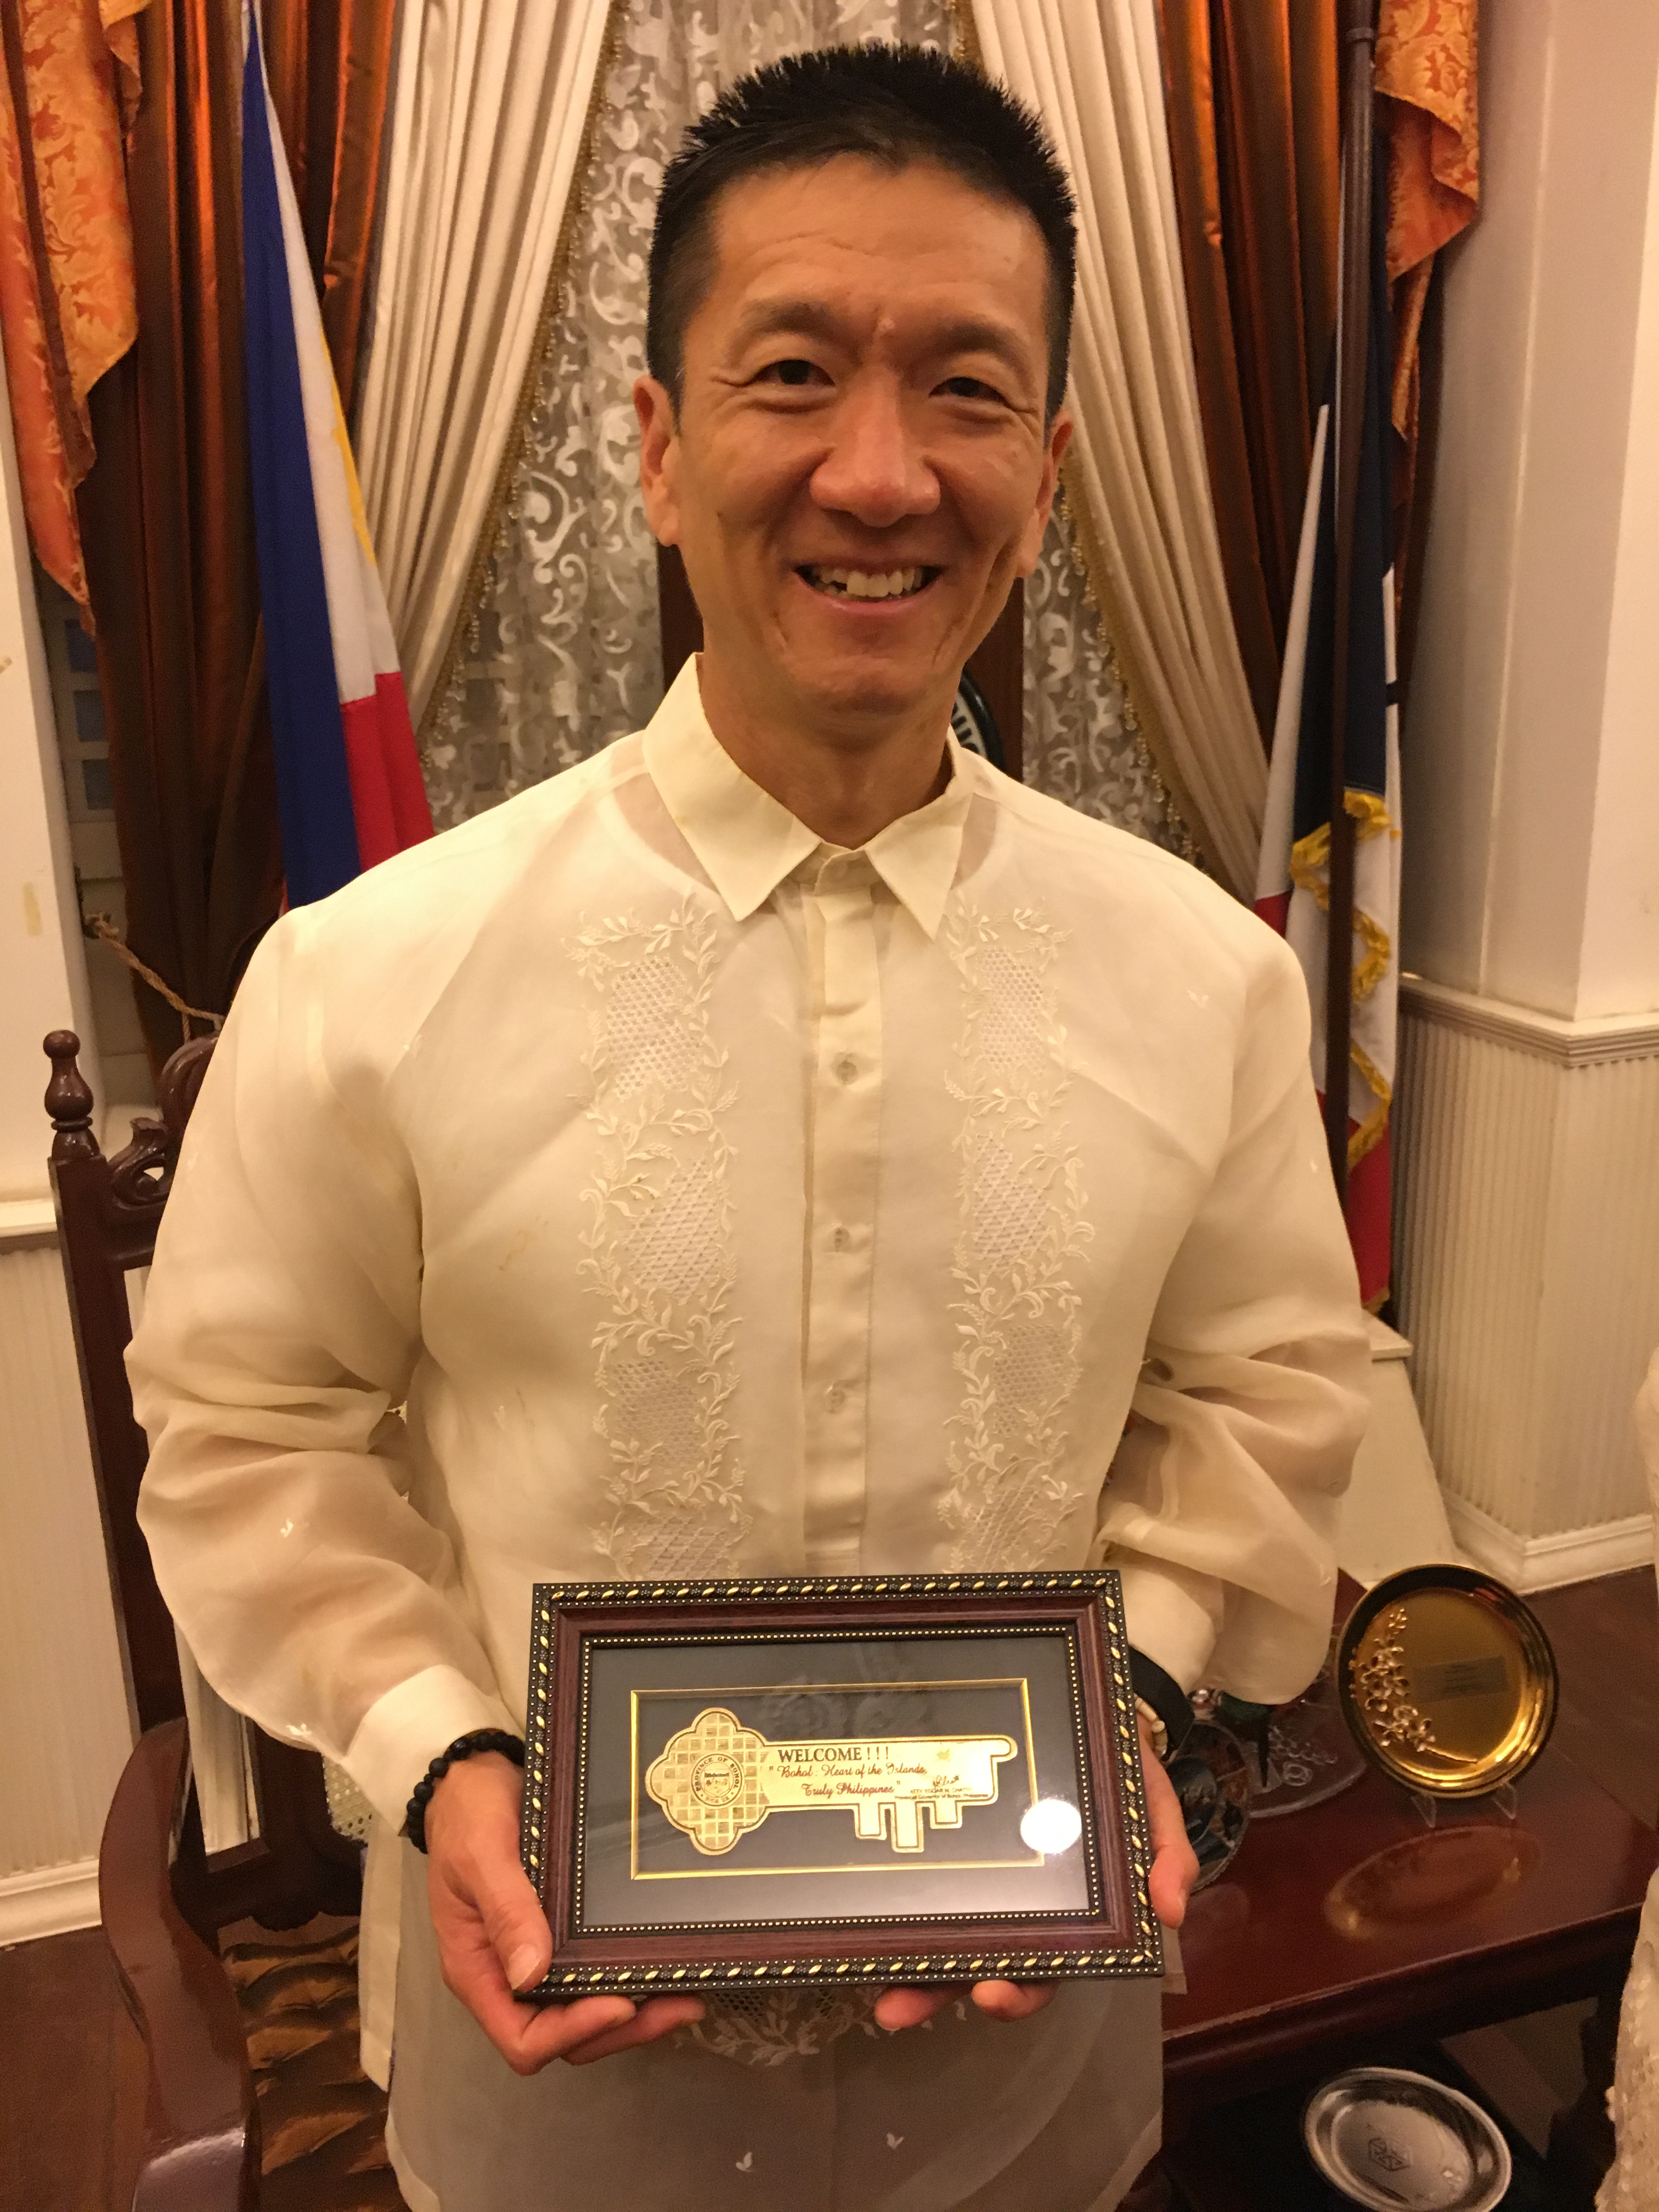 Lt. Gov Chin with Key to the Province of Bohol